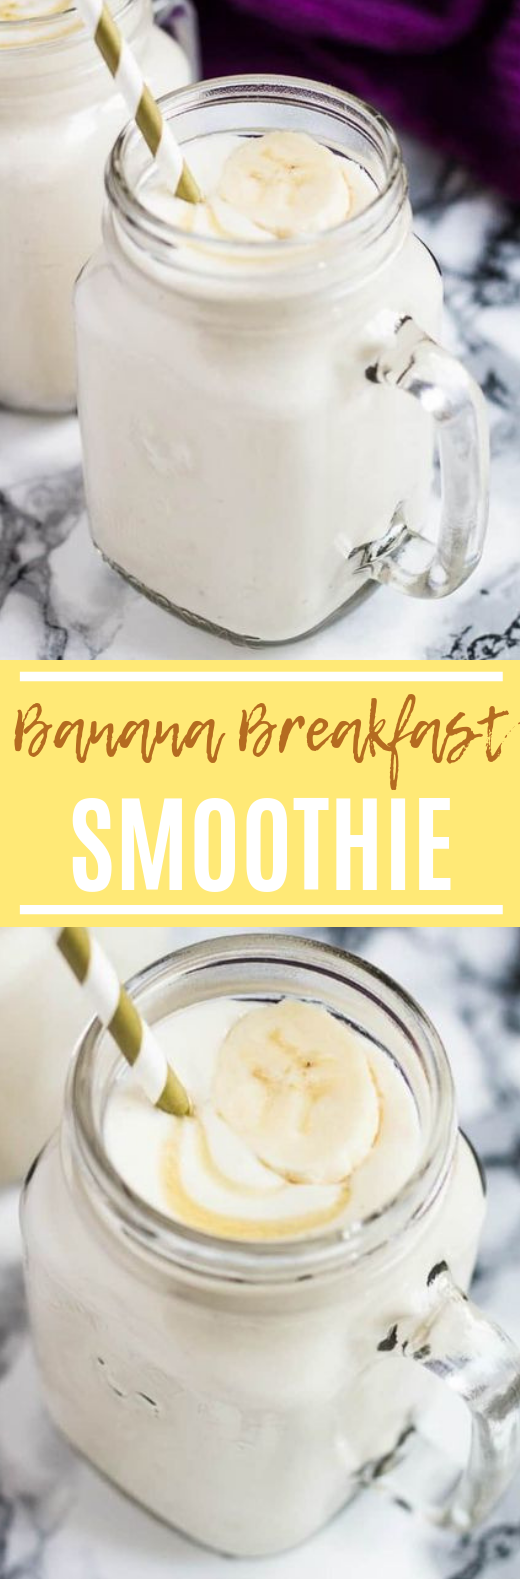 Banana Breakfast Smoothie #drinks #smoothie